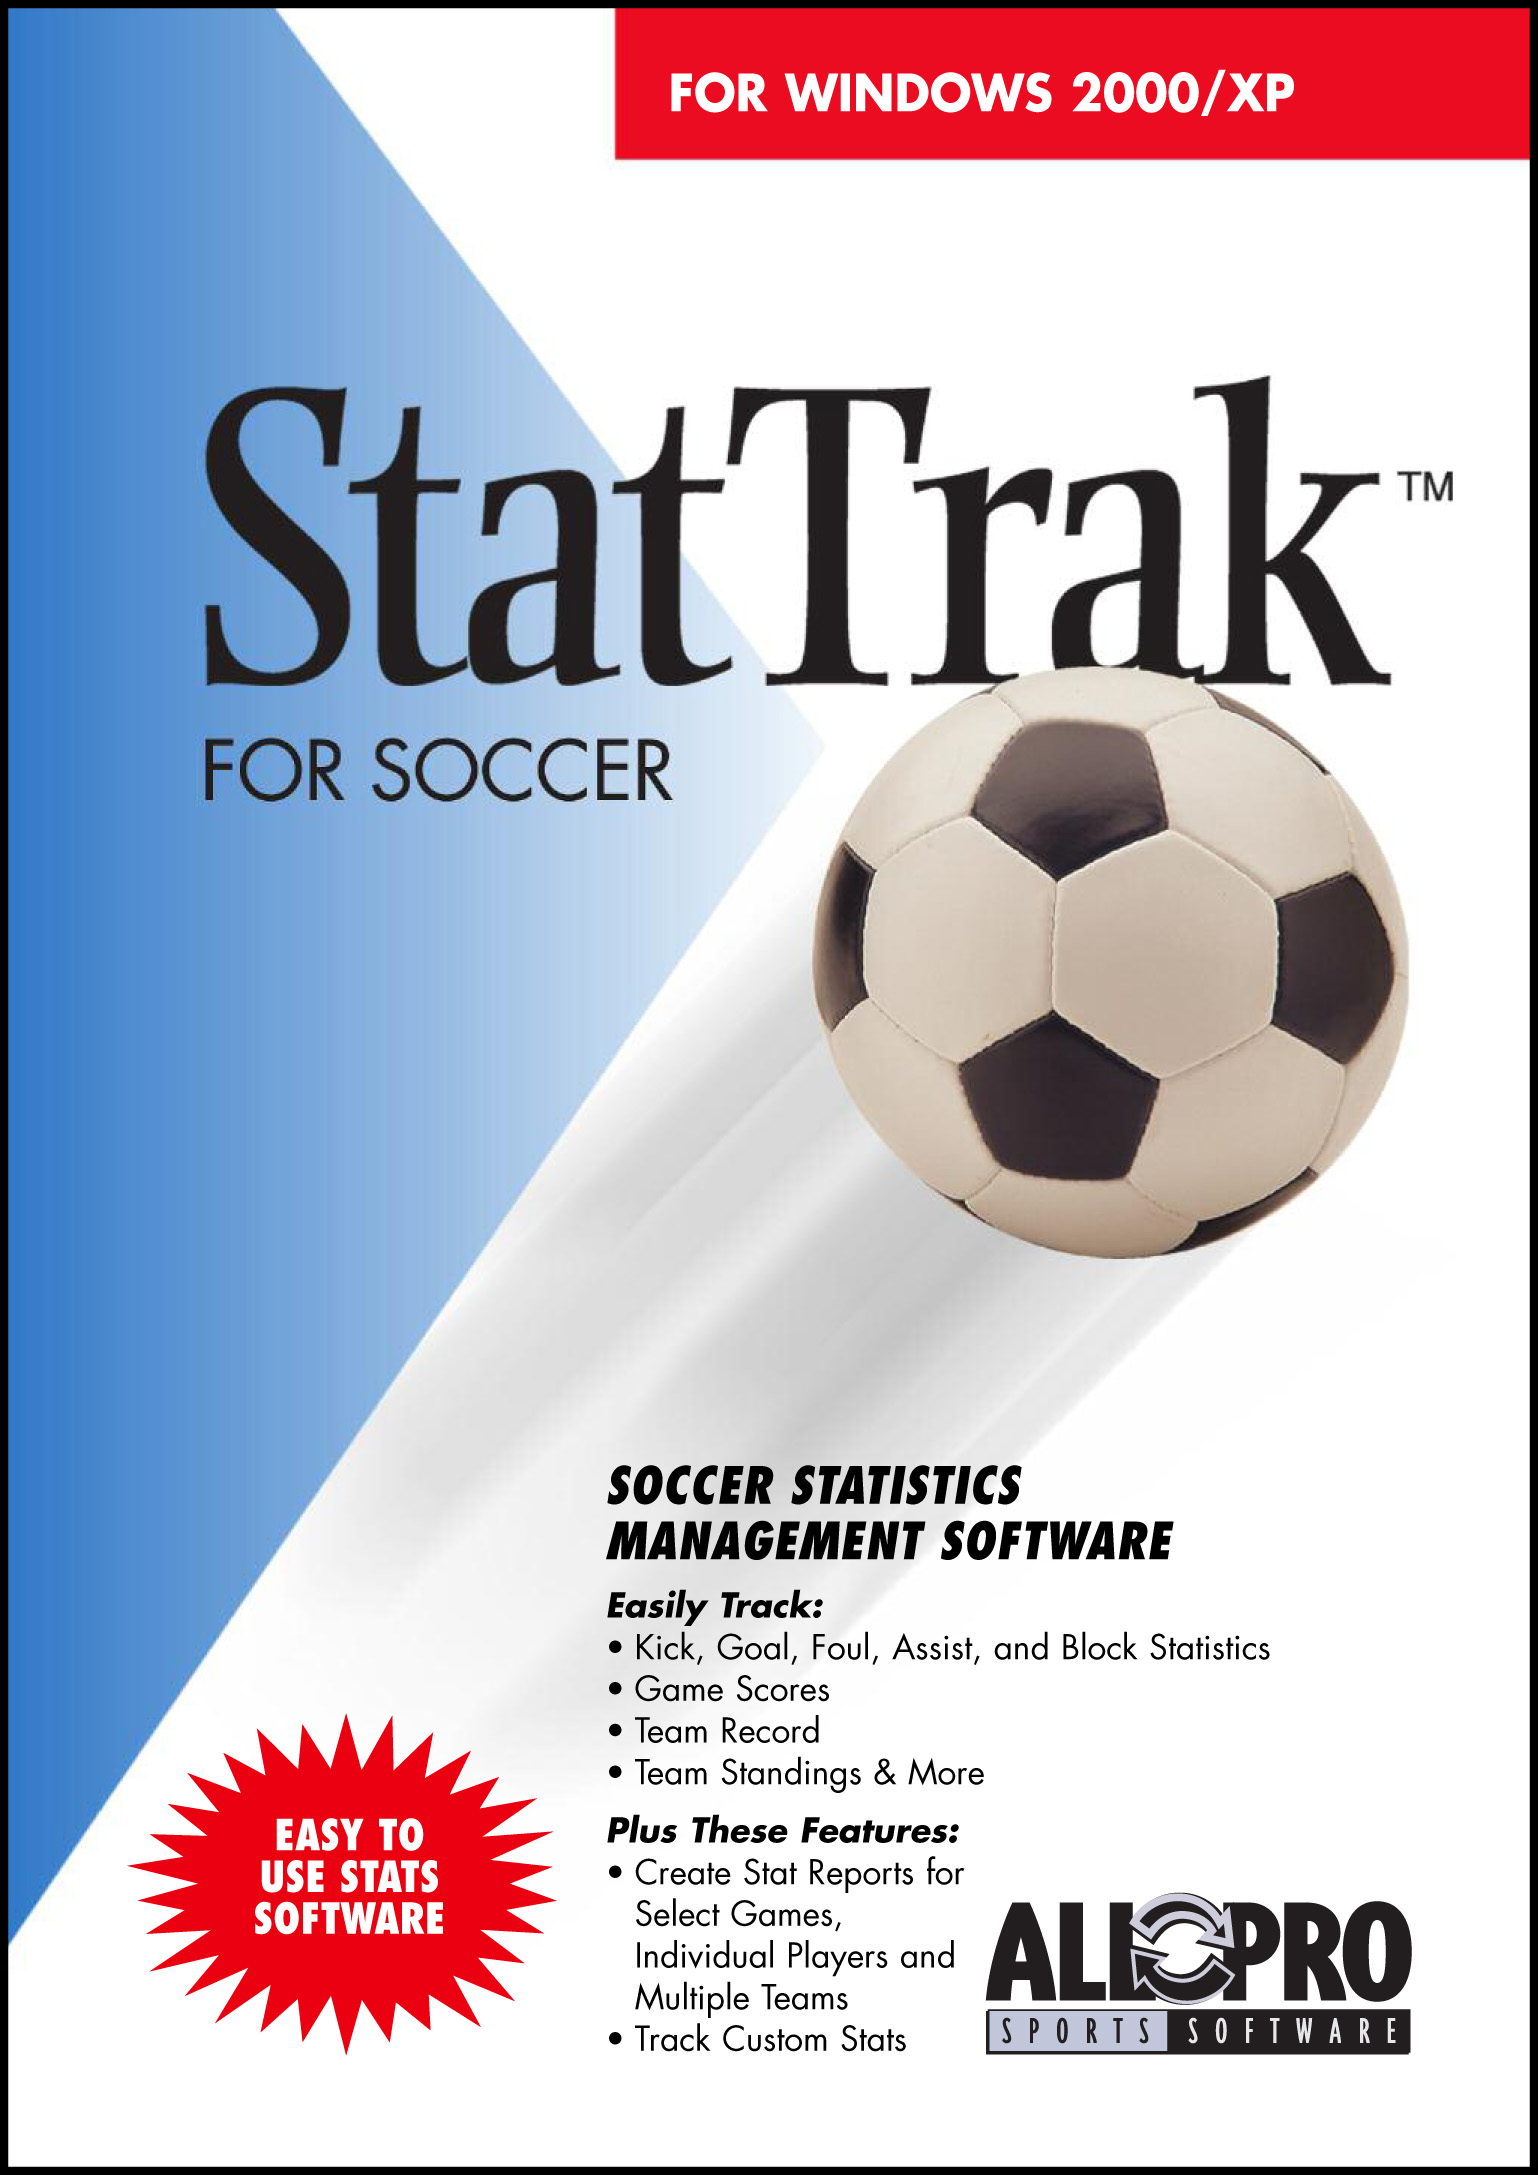 StatTrak for Soccer software is a complete stats program with many options yet very easy to use. Track and calculate over 40 stats for Kicks, Goals, Fouls, Blocks, Assists, game scores, won/lost record, team standings and more.